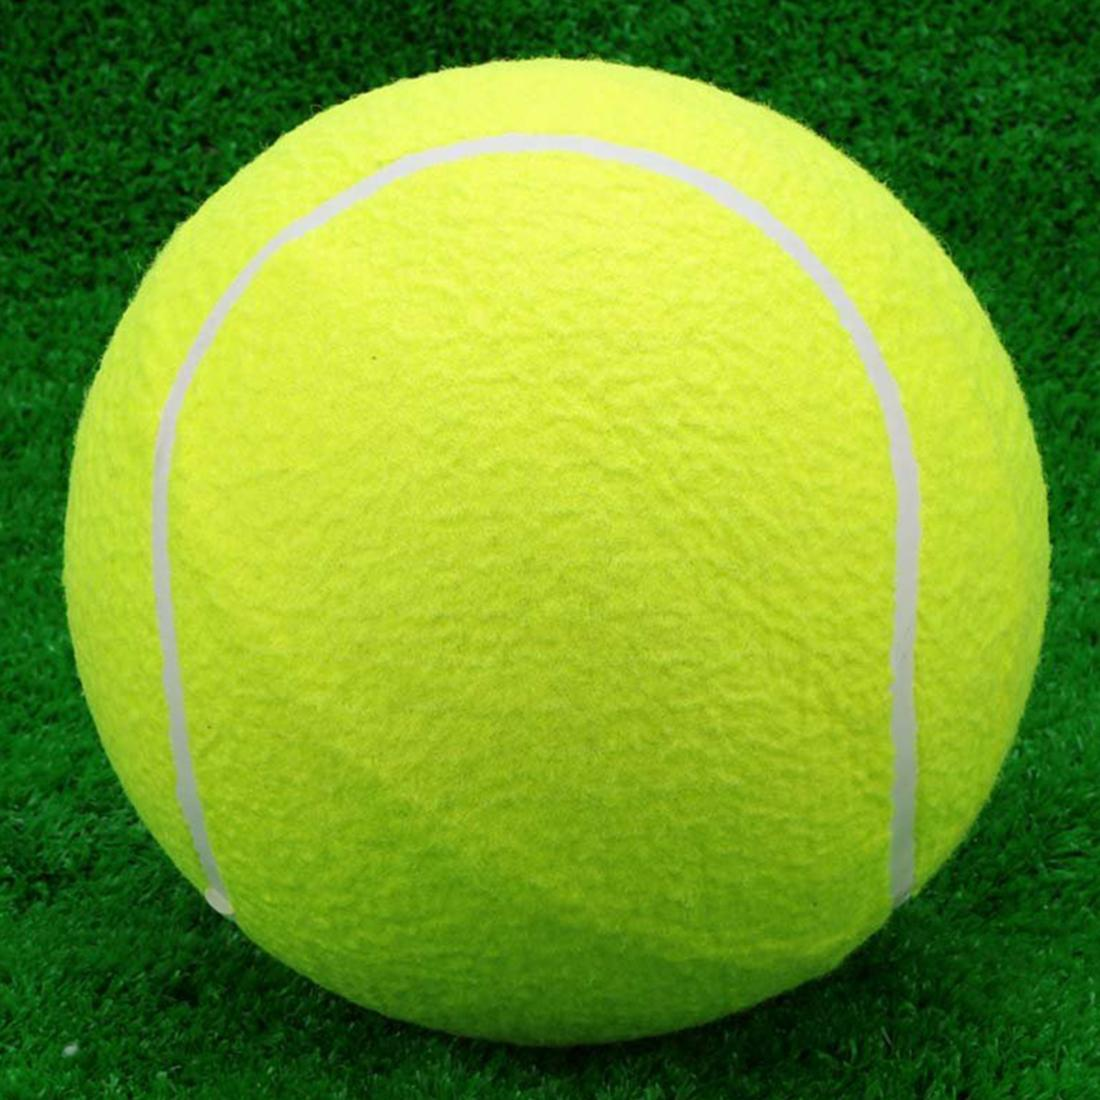 Wholesale- 9.5 Giant Tennis Ball For Pet Chew Toy Big Inflatable Tennis Ball Signature Mega Jumbo Pet Toy Ball Supplies Outdoor Cricket